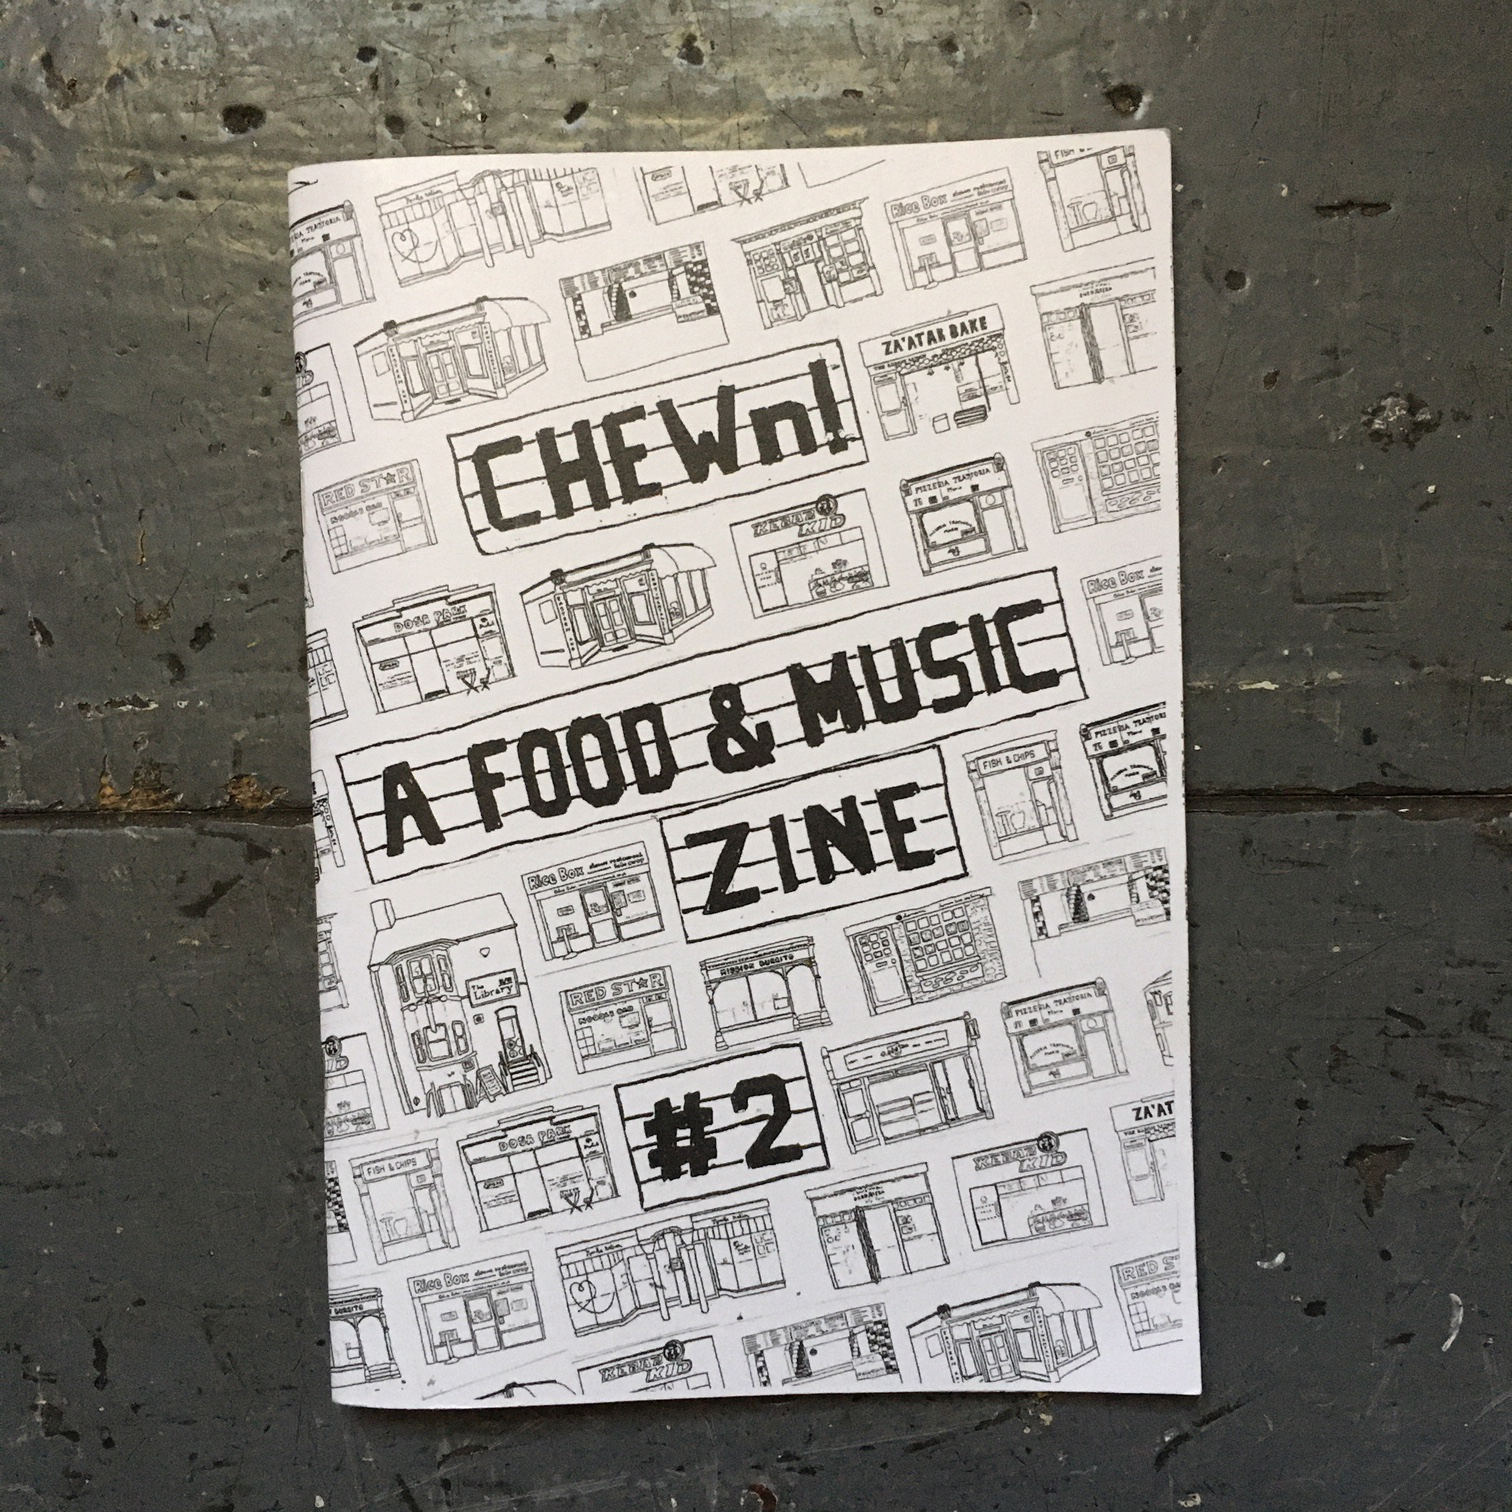 CHEWn: A Food & Music Zine #1 - #3